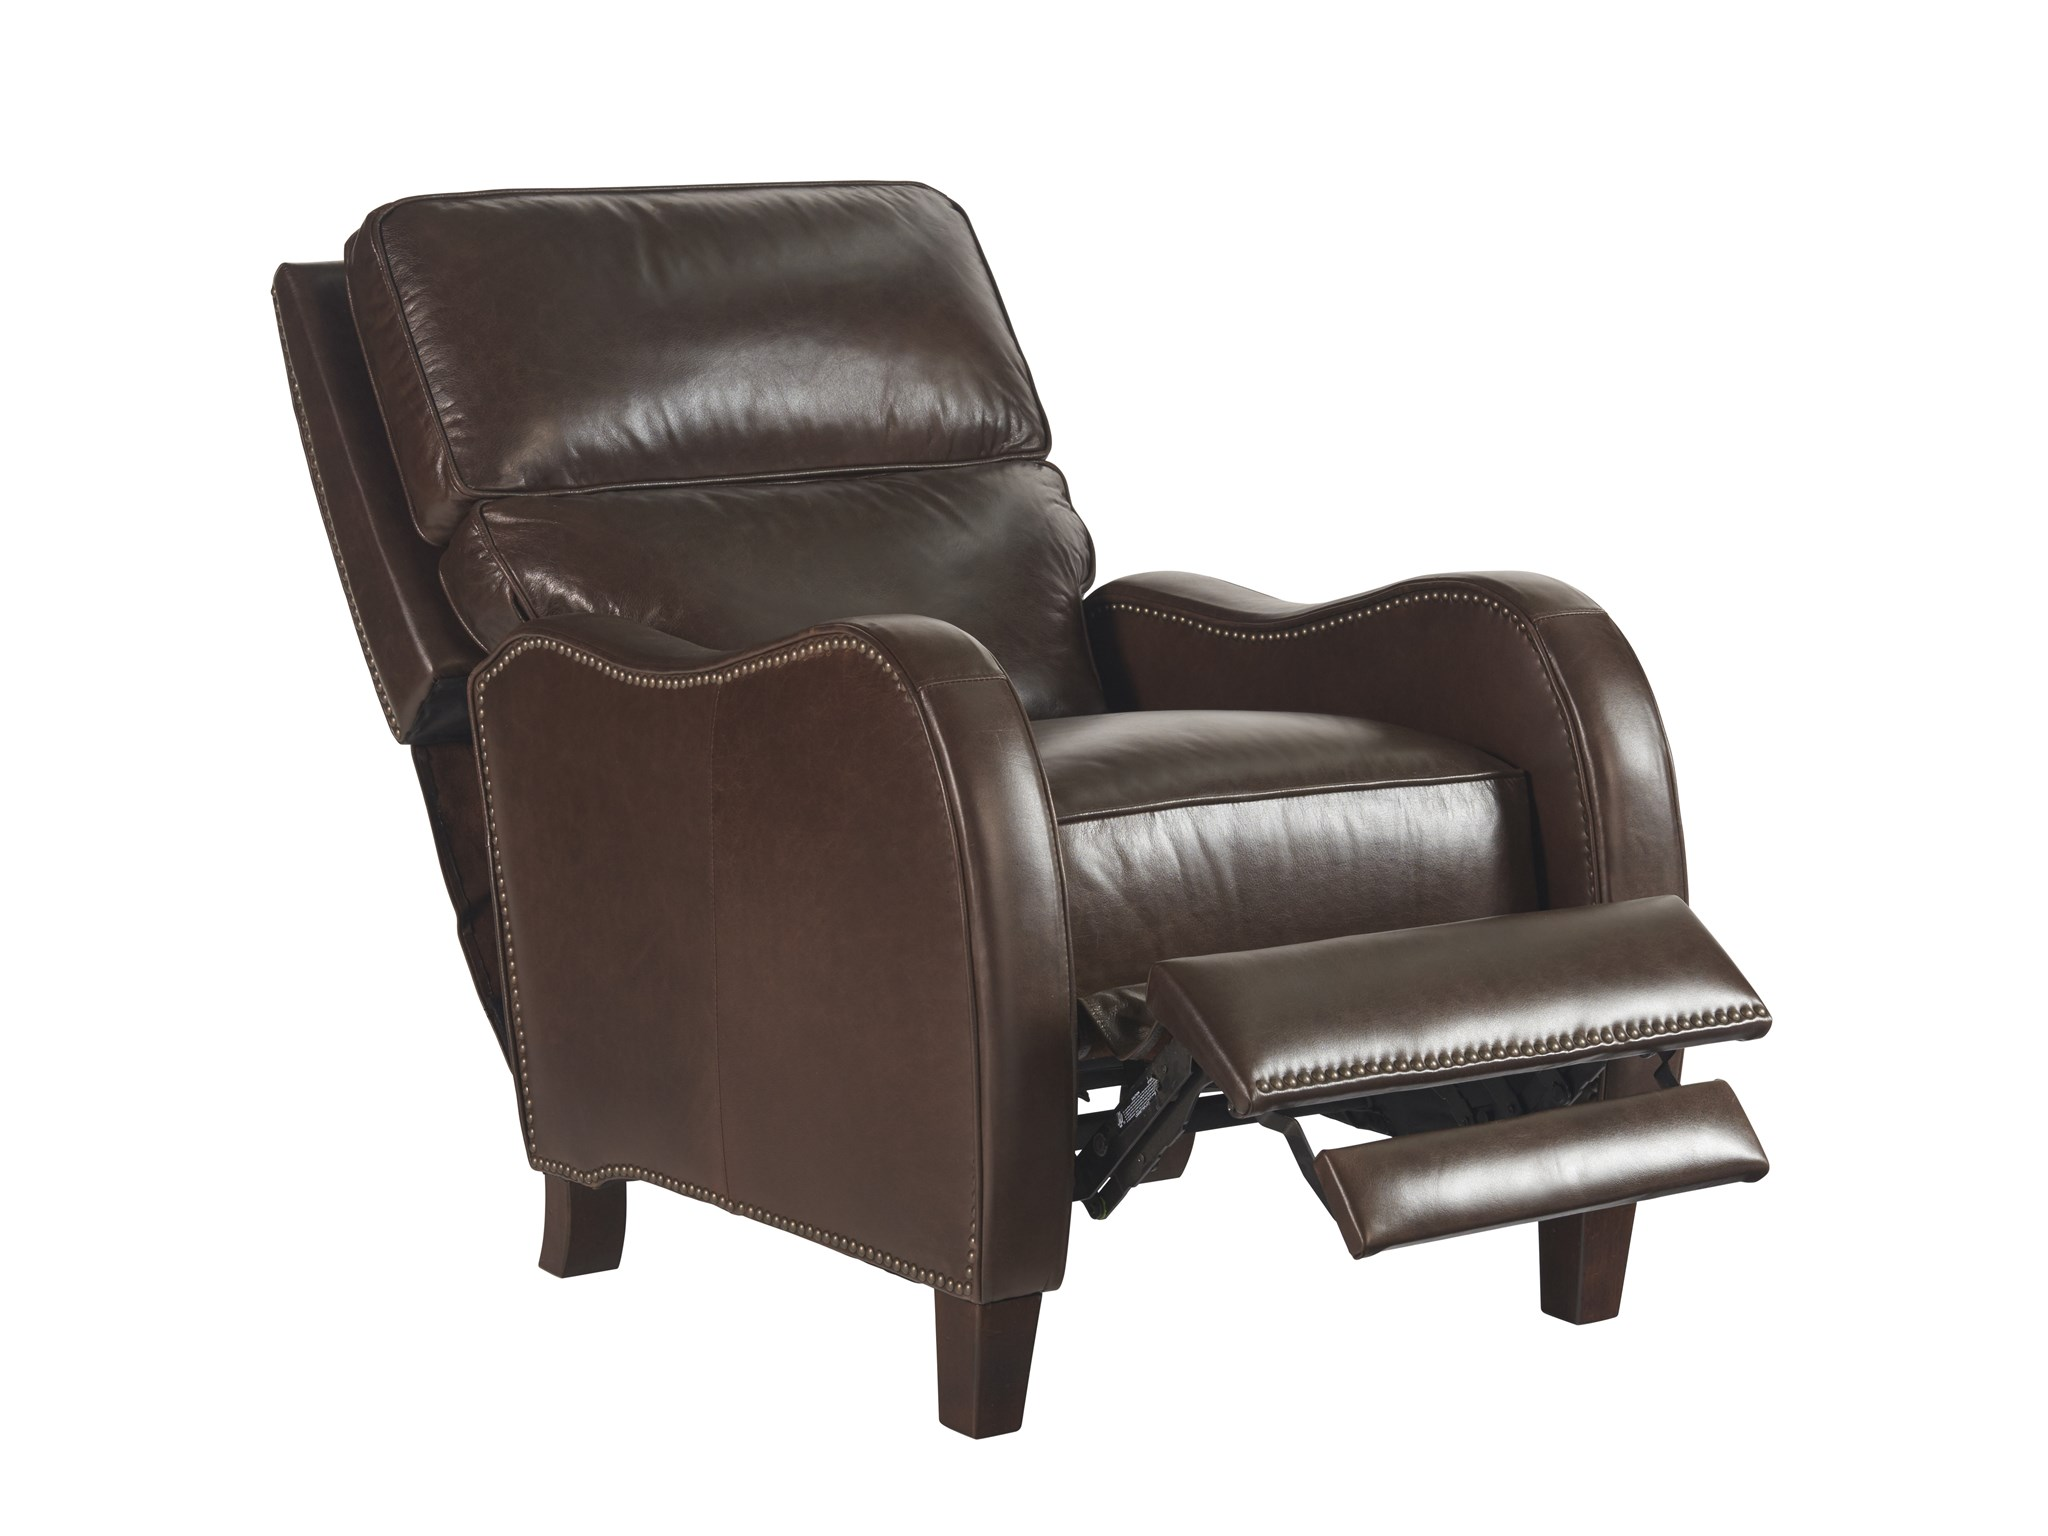 Excellent Upholstery The Rodgers Recliner Universal Furniture Machost Co Dining Chair Design Ideas Machostcouk